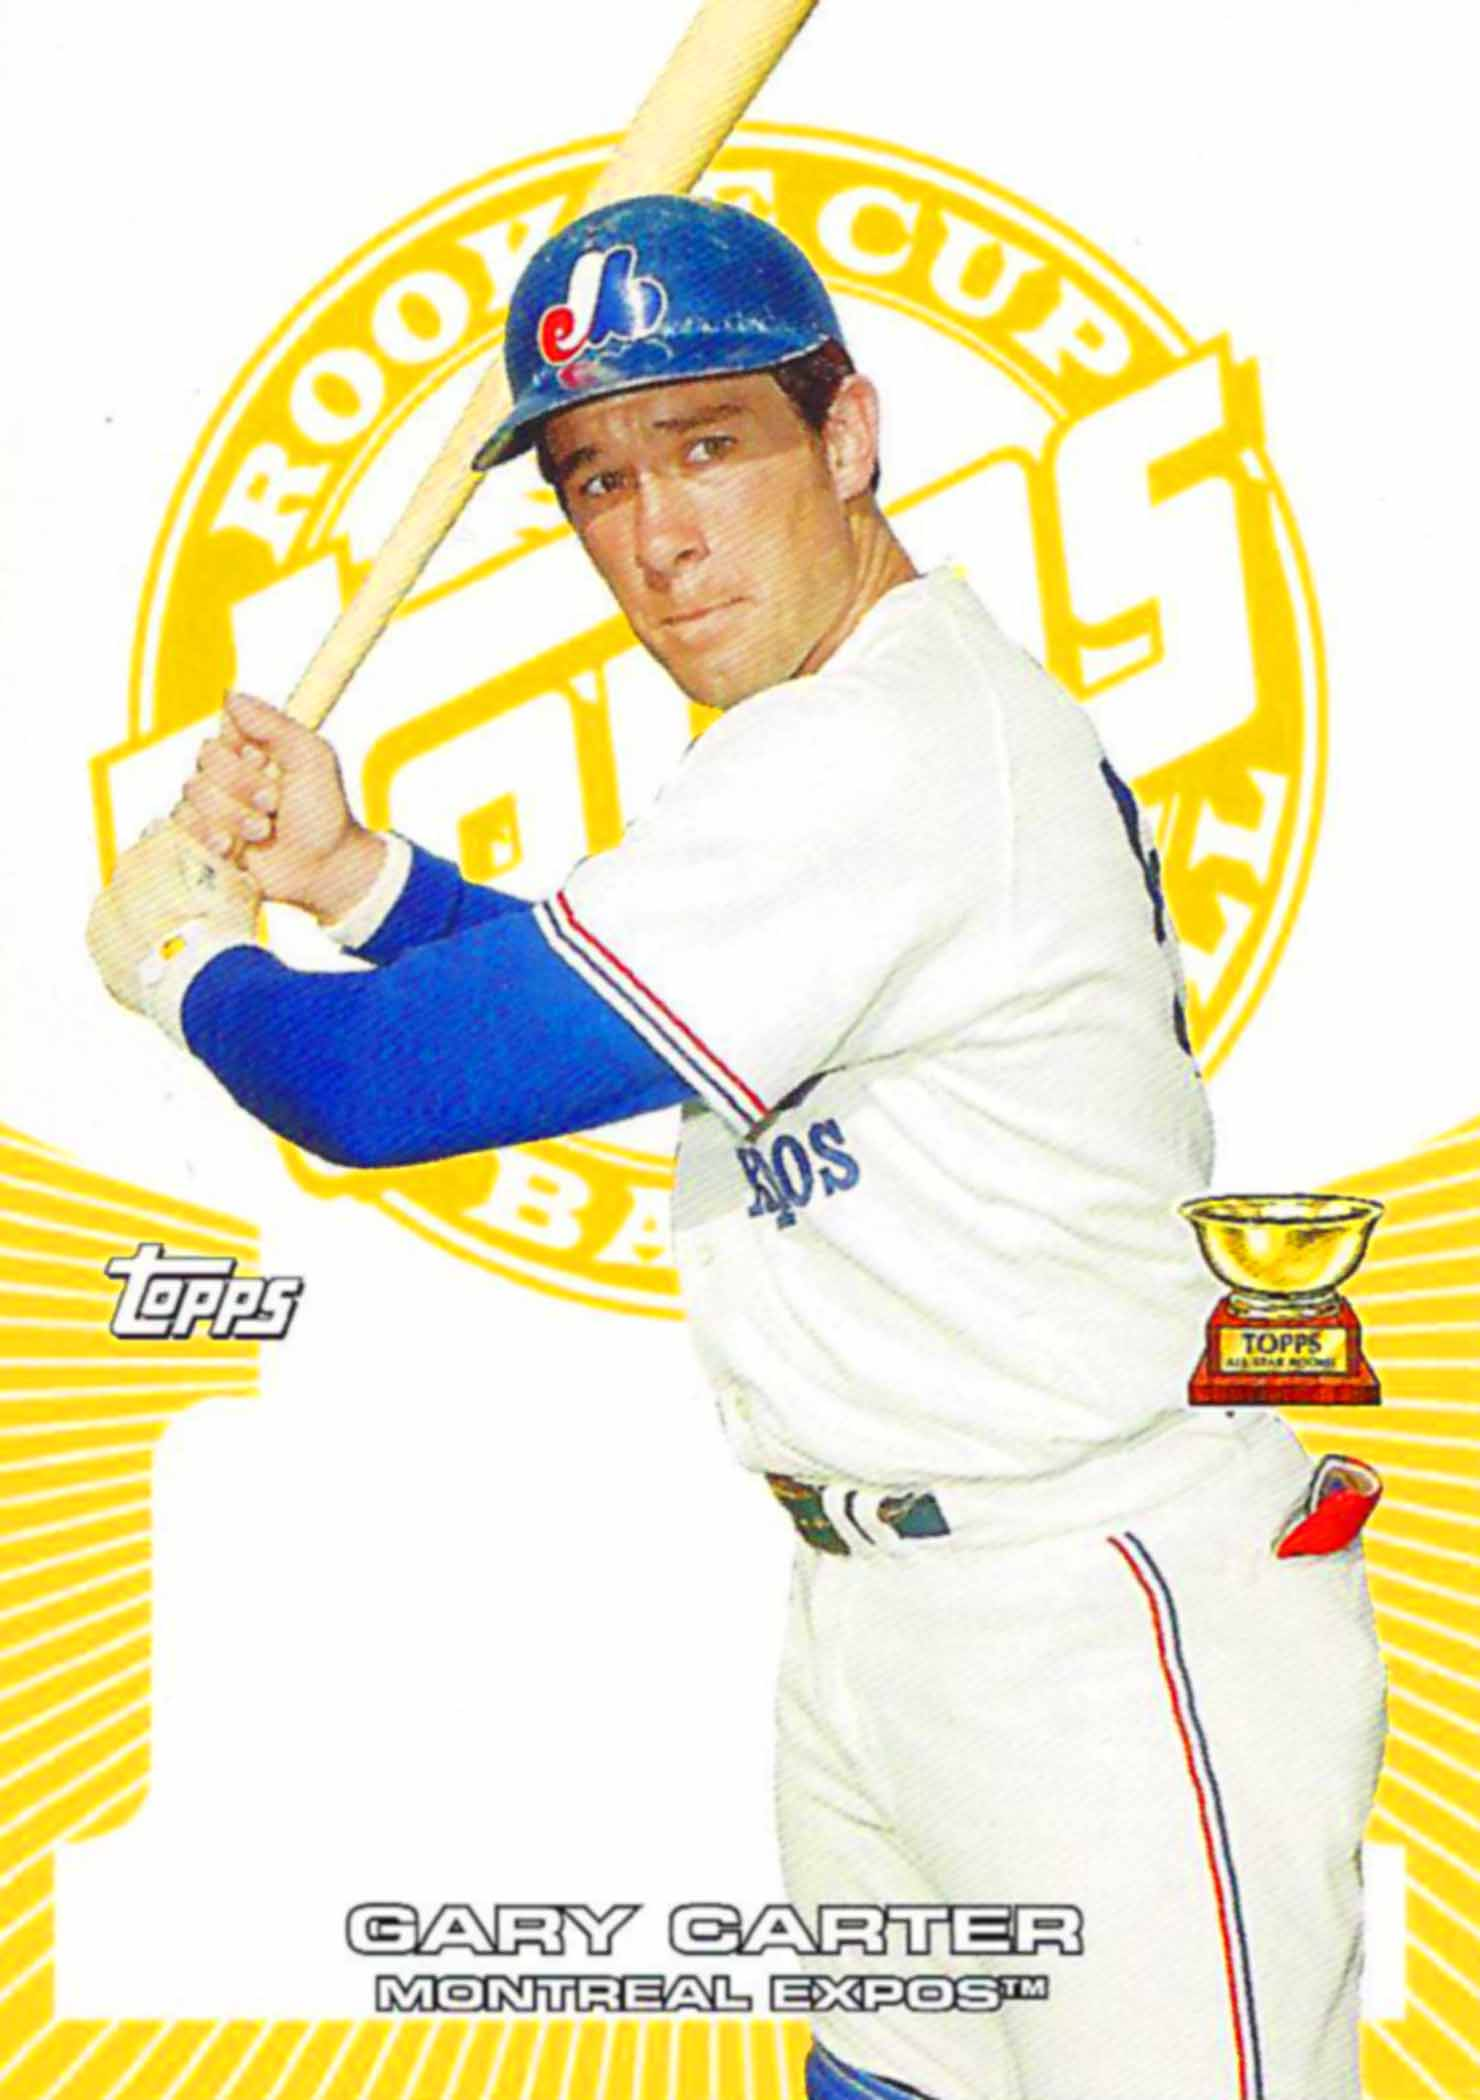 2001 Upper Deck Prospect Premieres Heroes of Baseball Game Bats